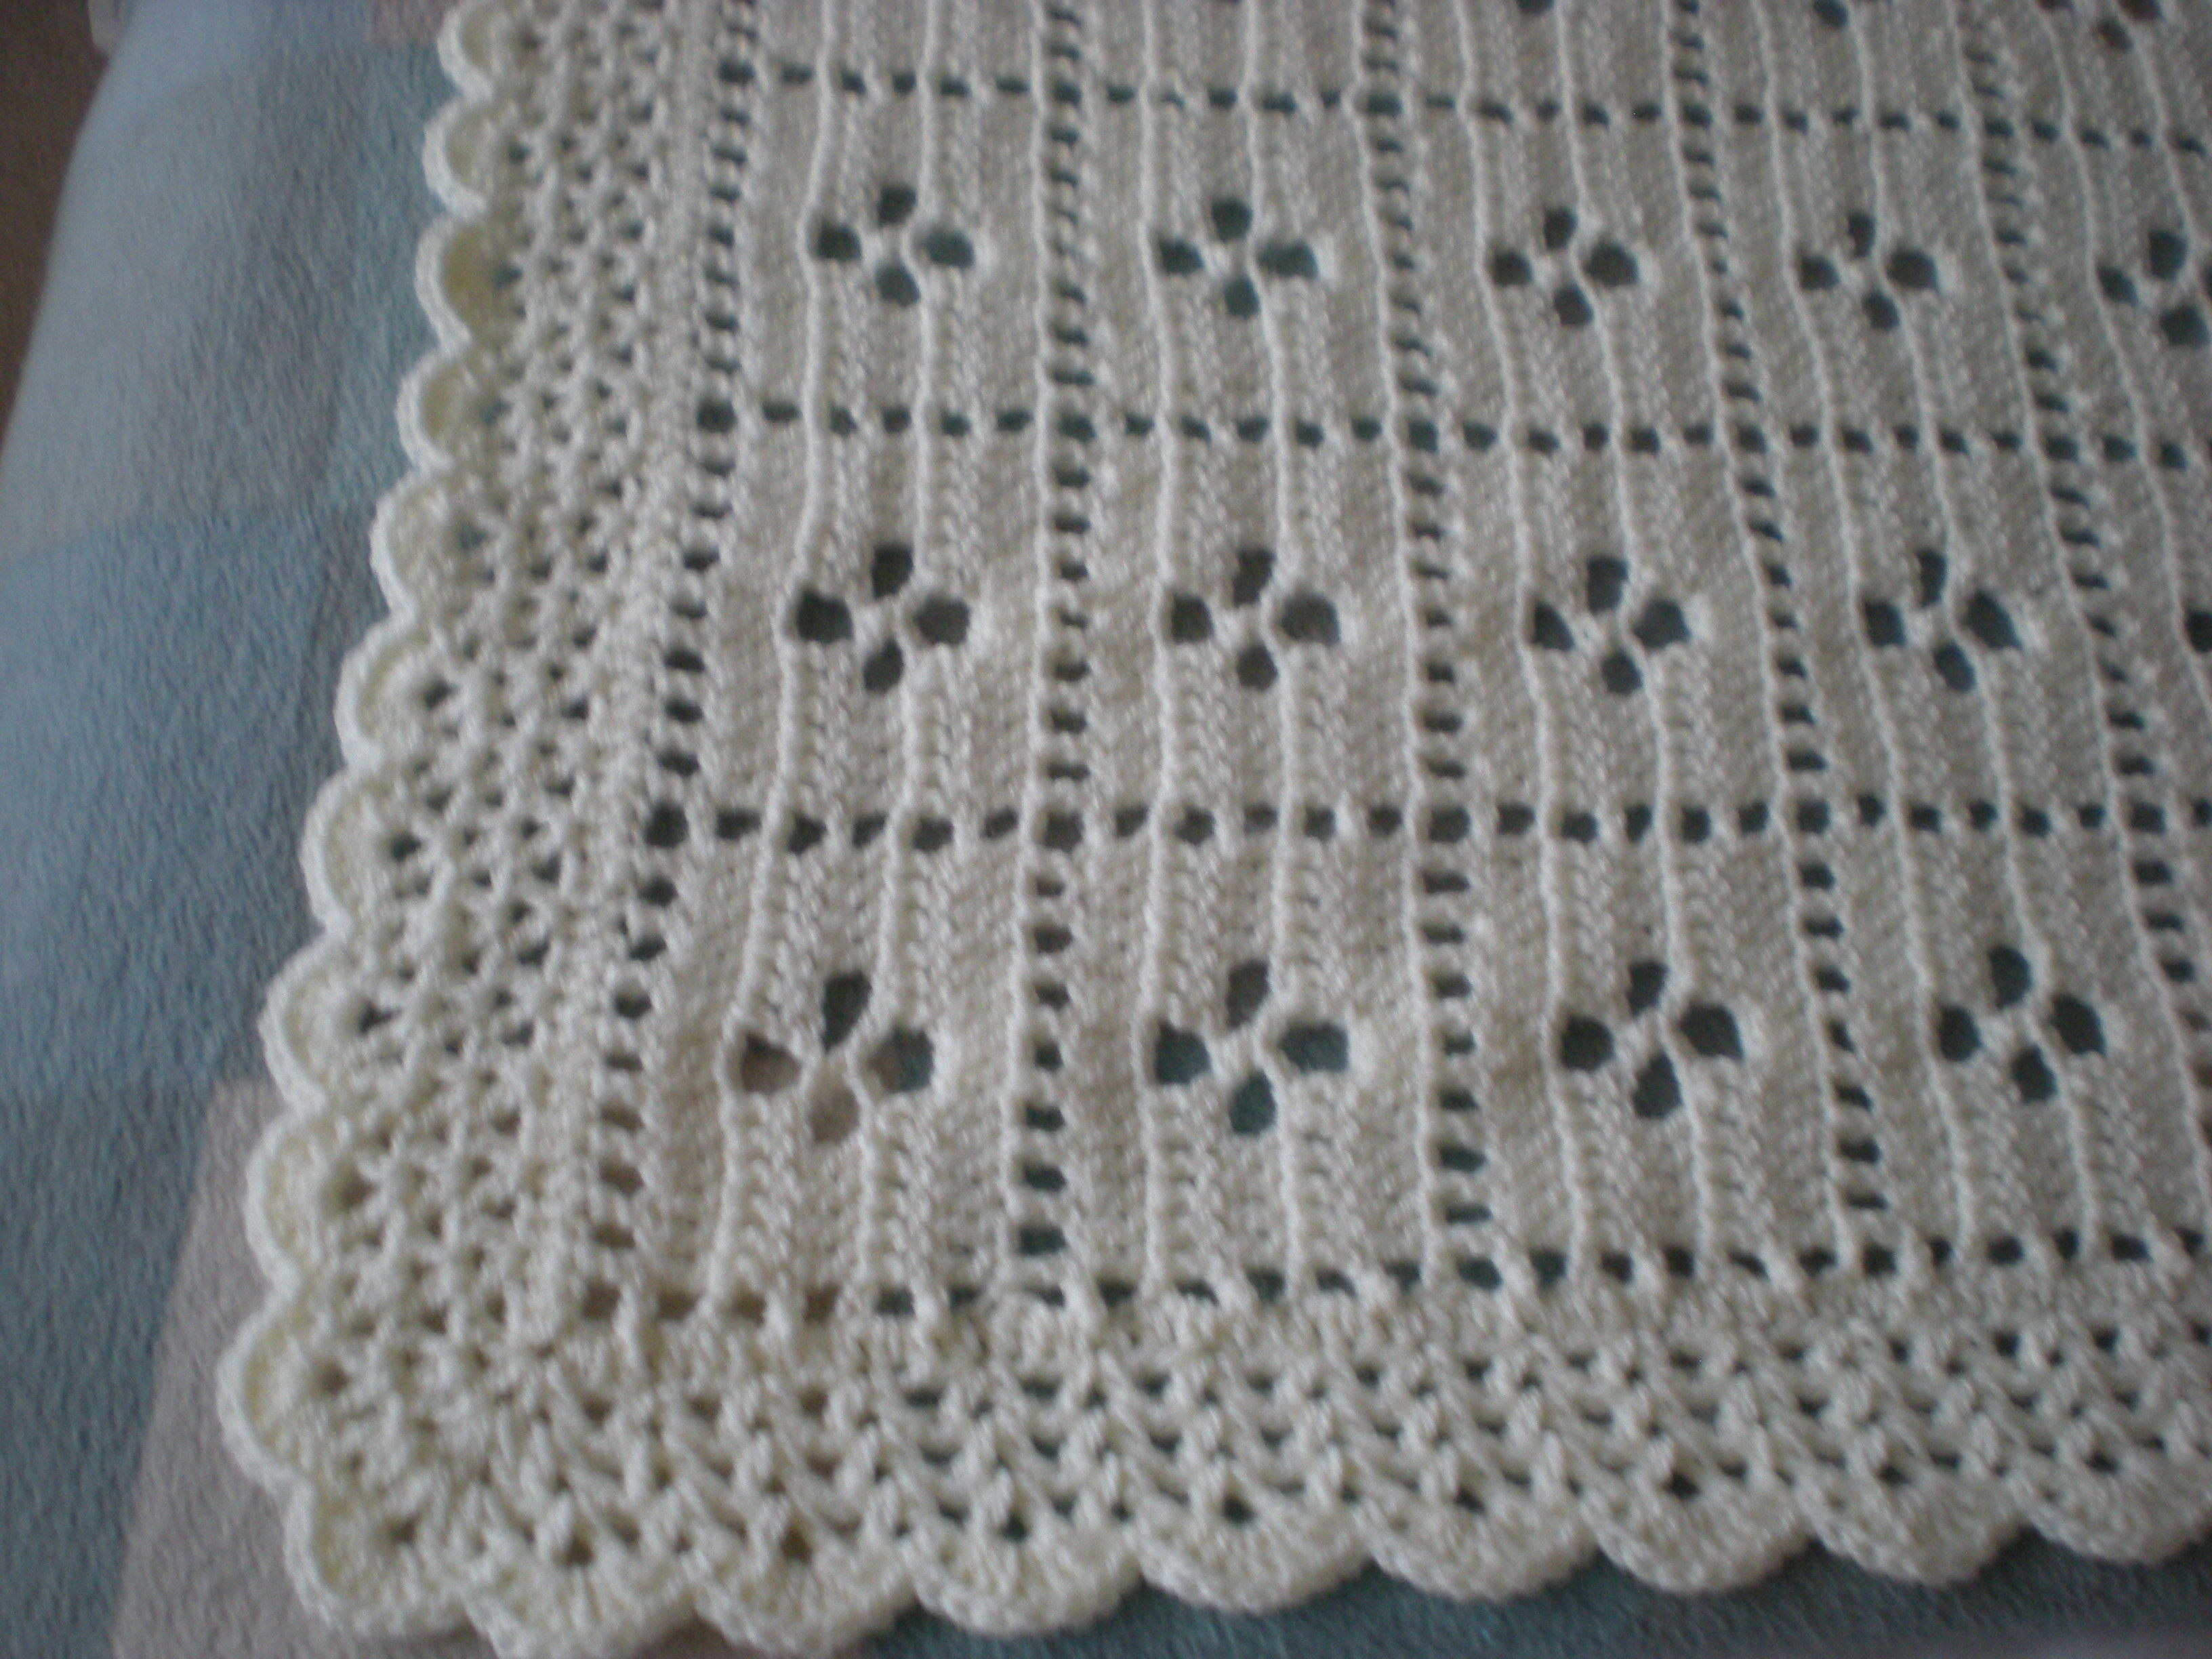 Knitting Pattern For Call The Midwife Blanket : Call The Midwife Inspired Blanket crochet project by Sue LoveKnitting